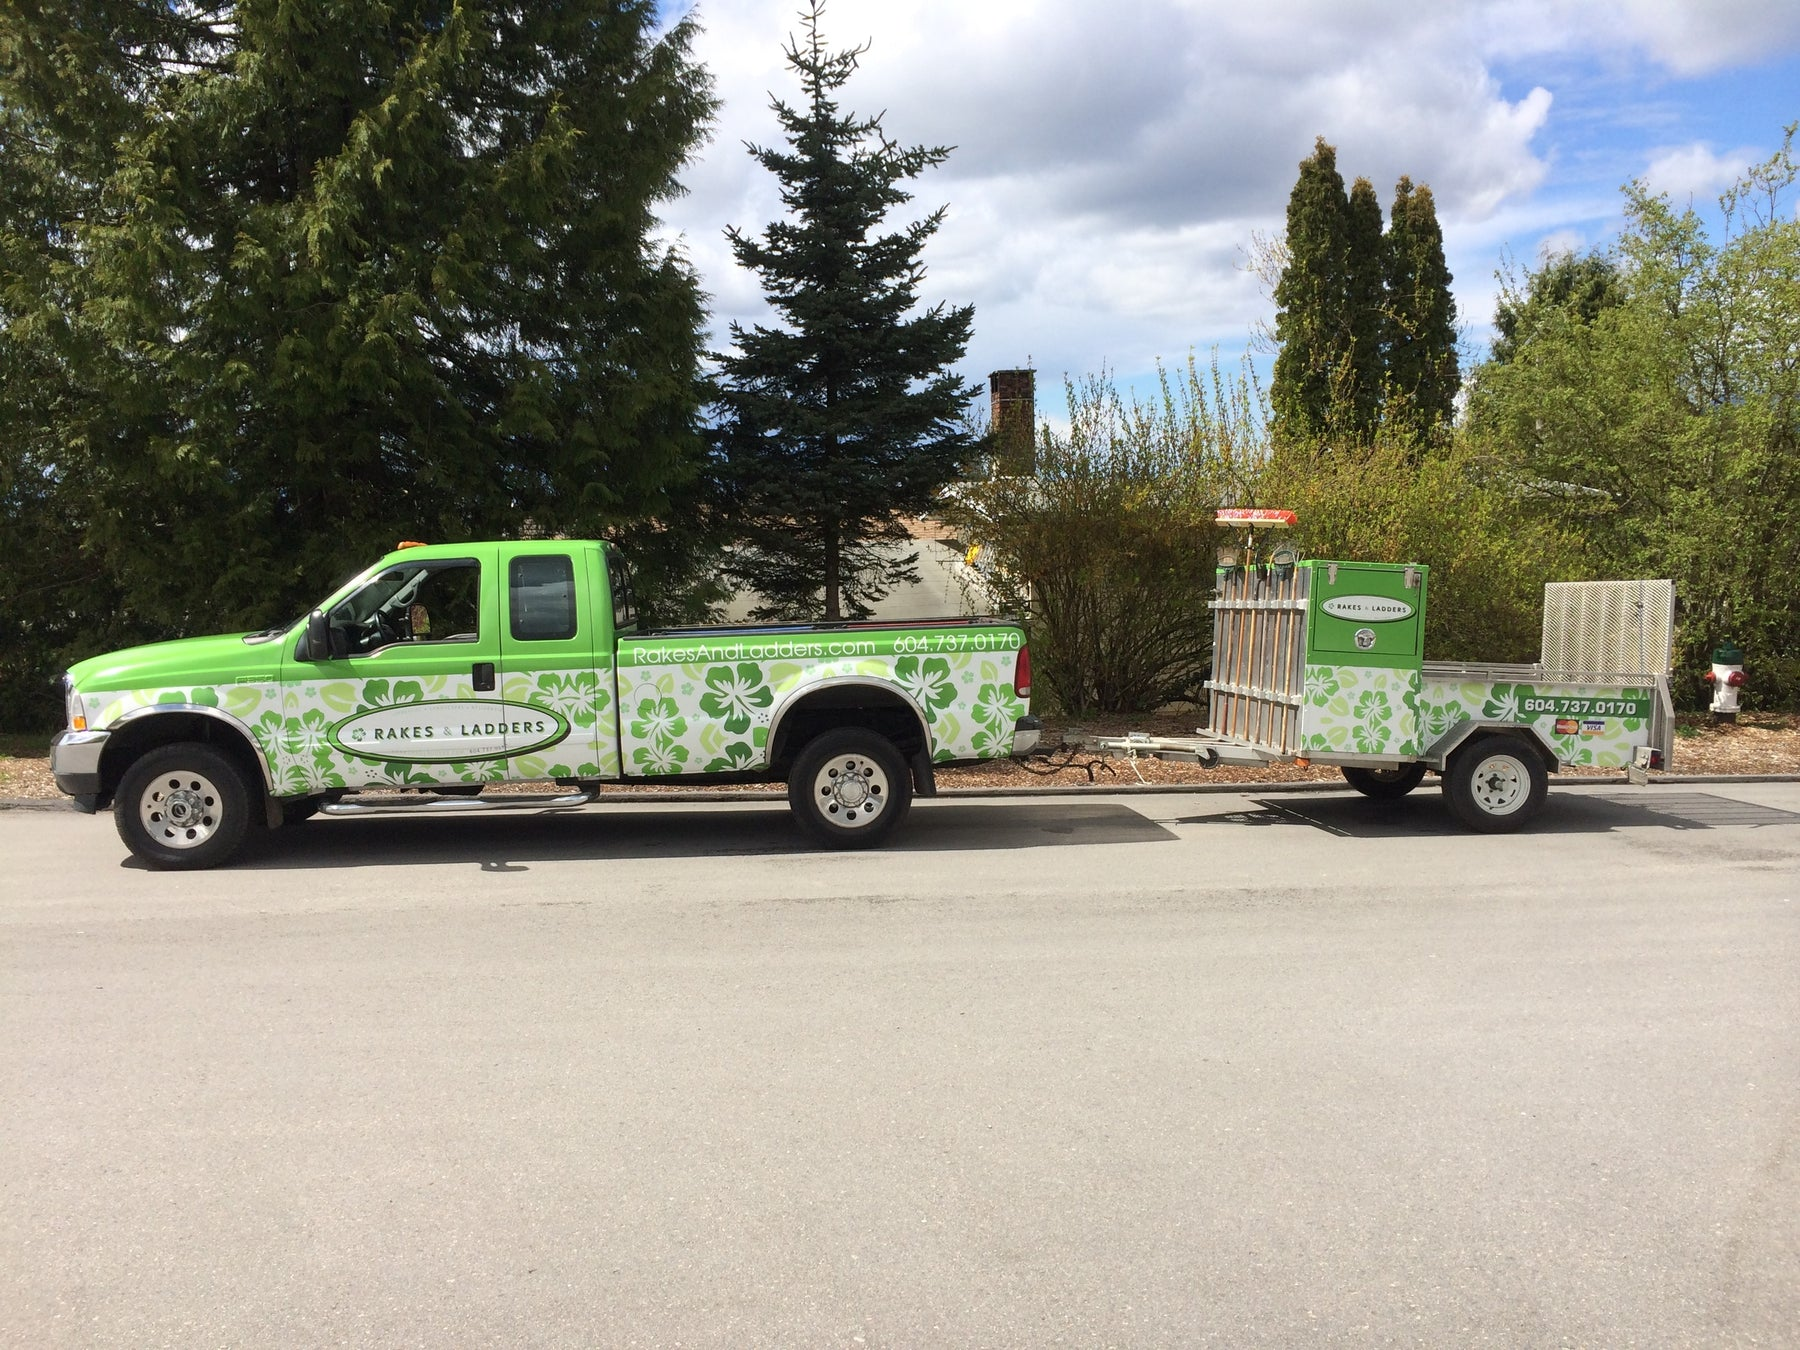 Rakes and Ladders truck&trailer wrap